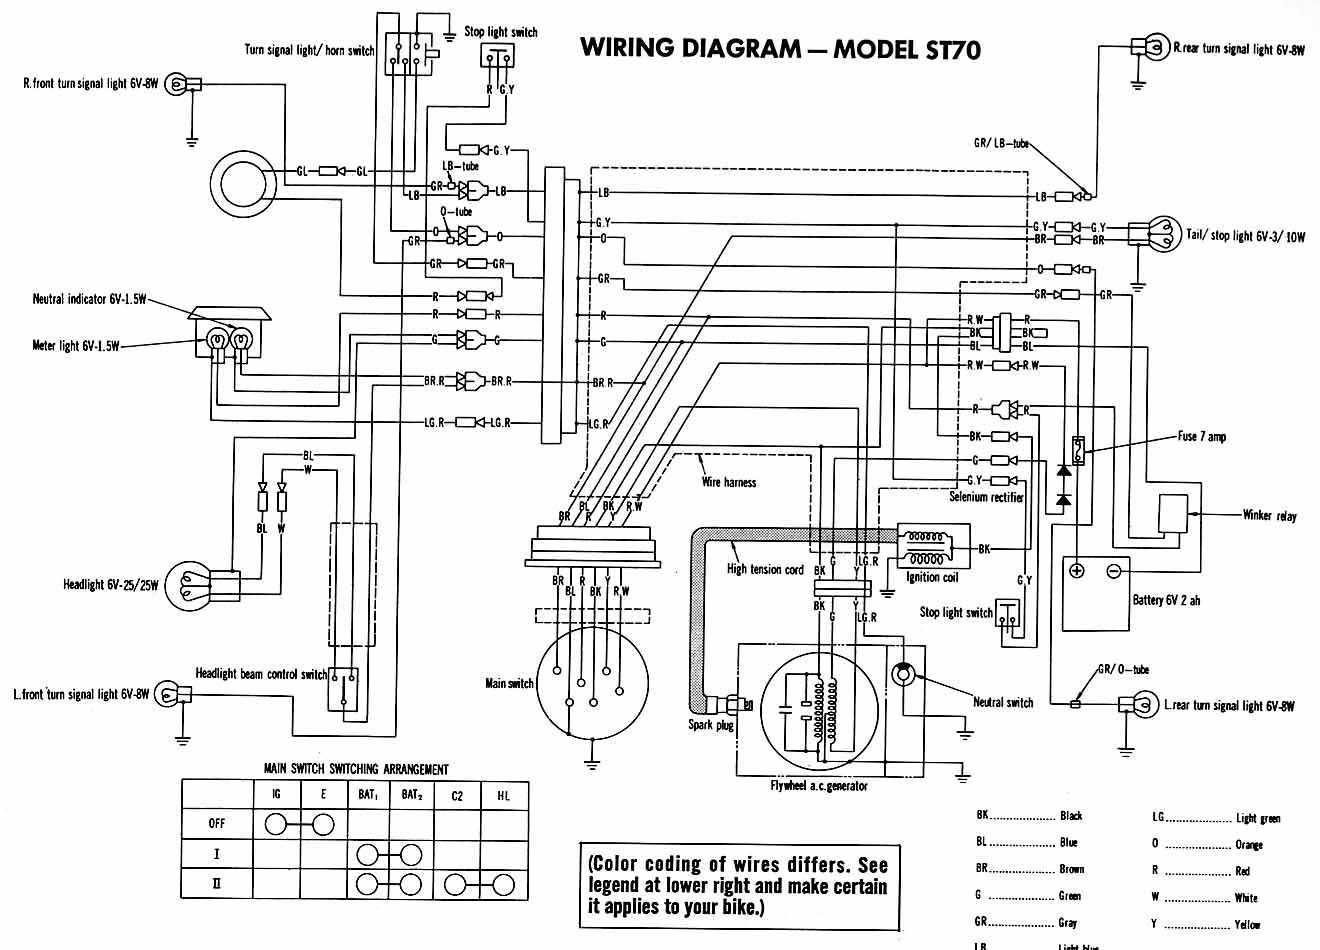 2000 yamaha r6 wiring diagram parts of the eye for kids ignition switch rhino